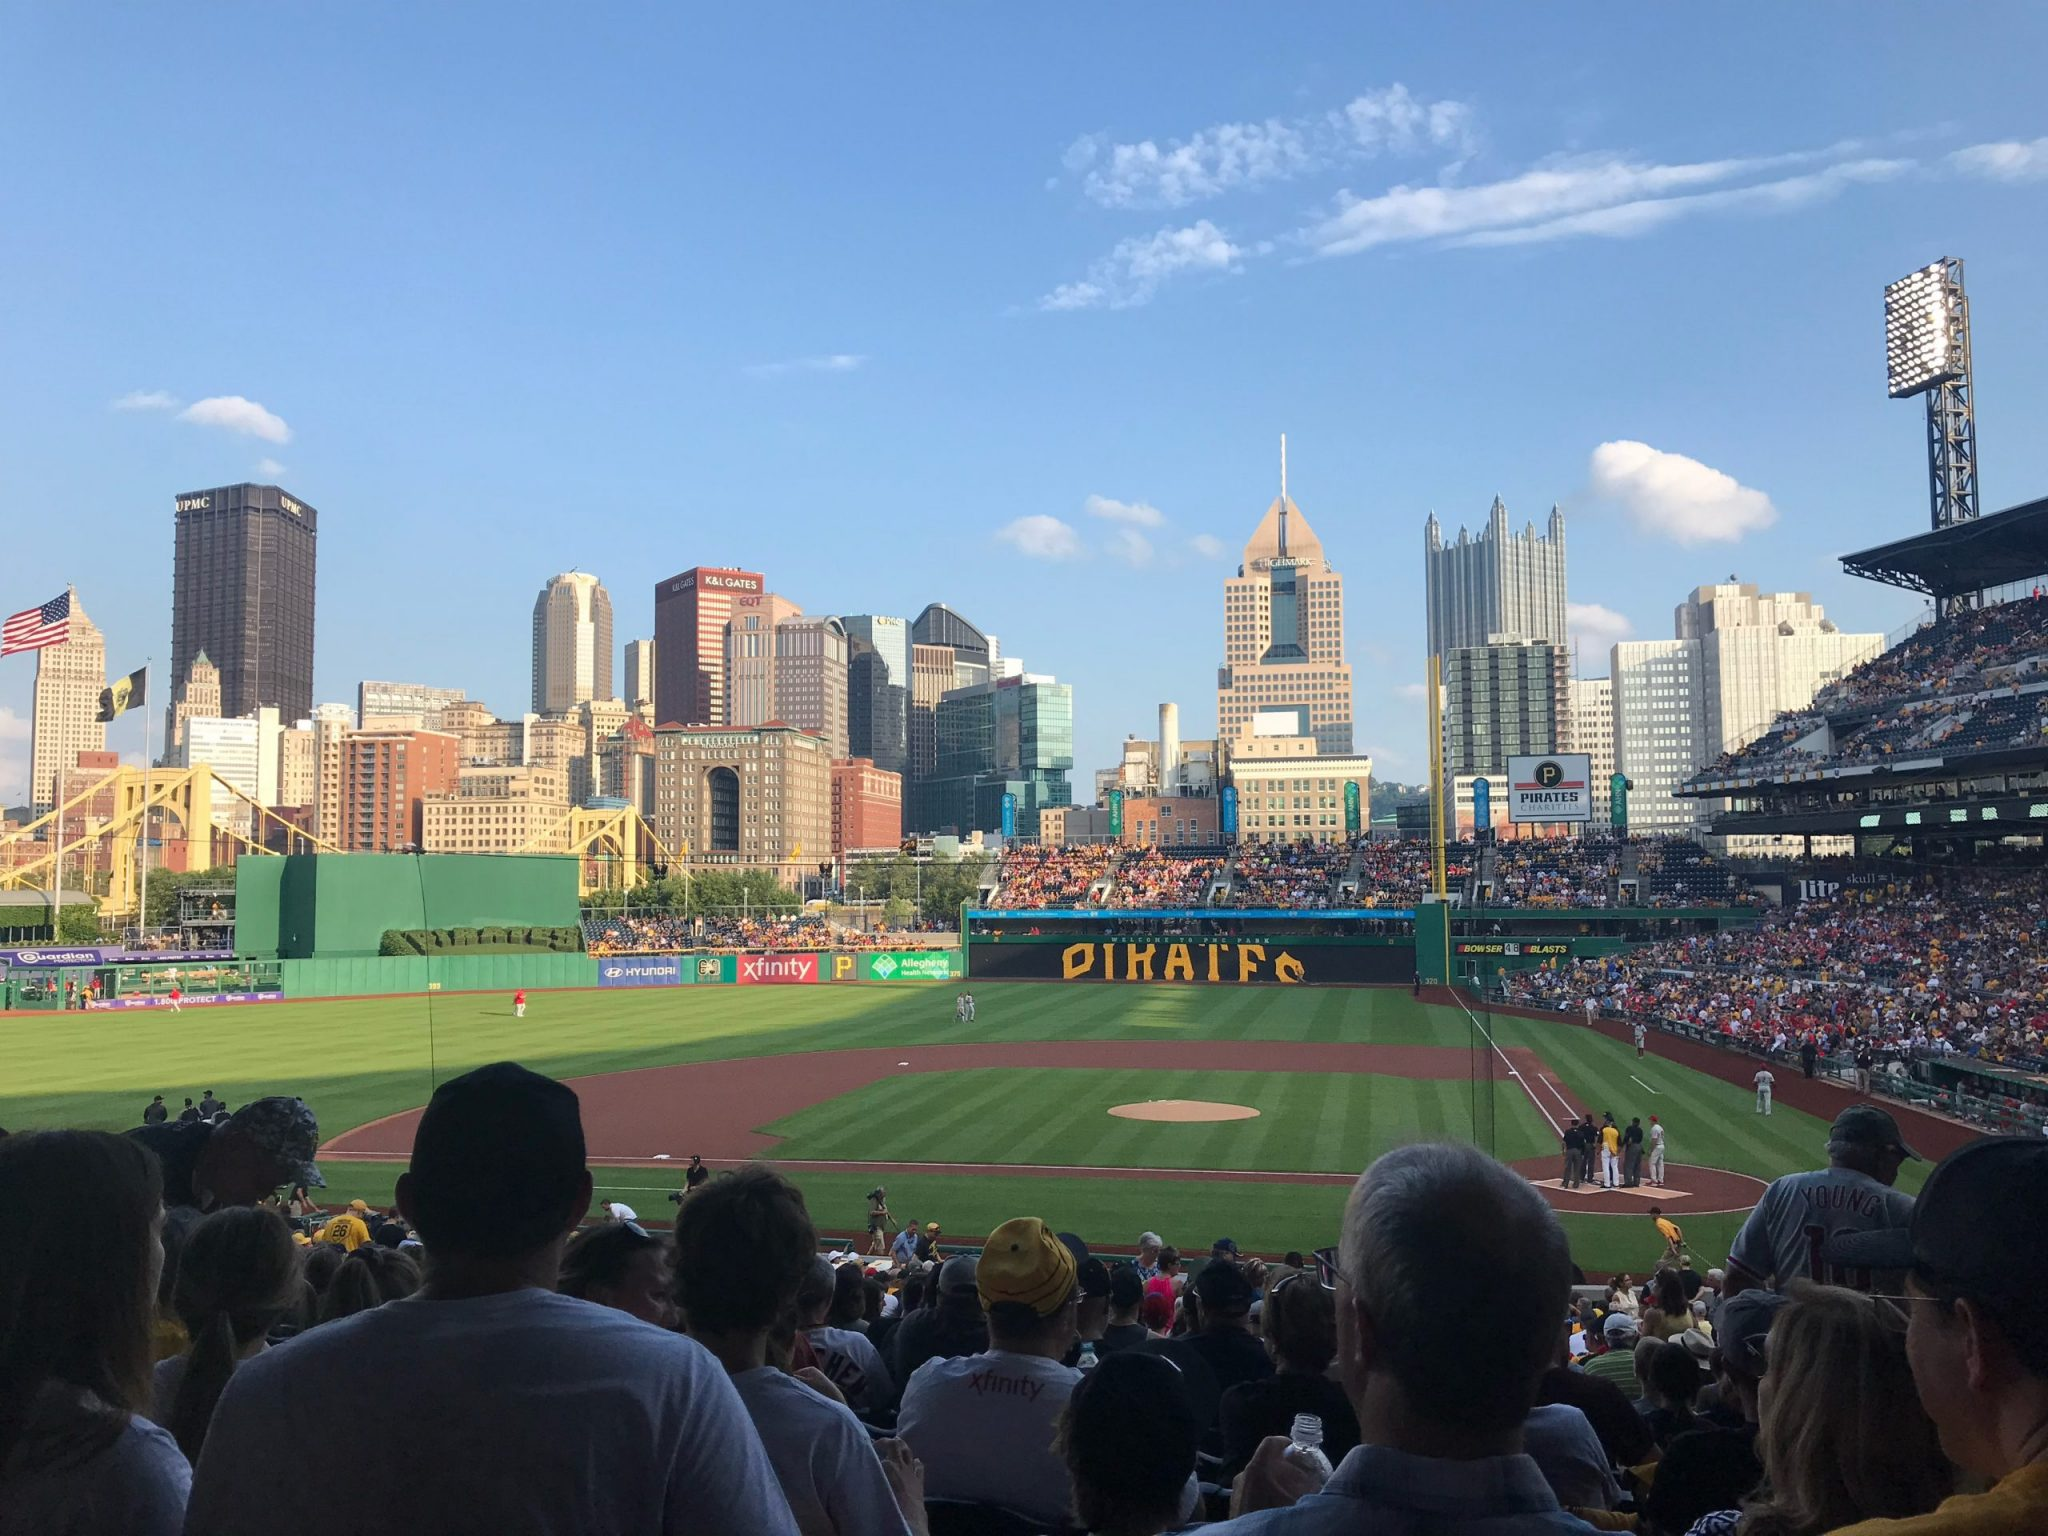 One of the best things to do in Pittsburgh is to visit PNC Park, Pittsburgh's beautiful baseball stadium..